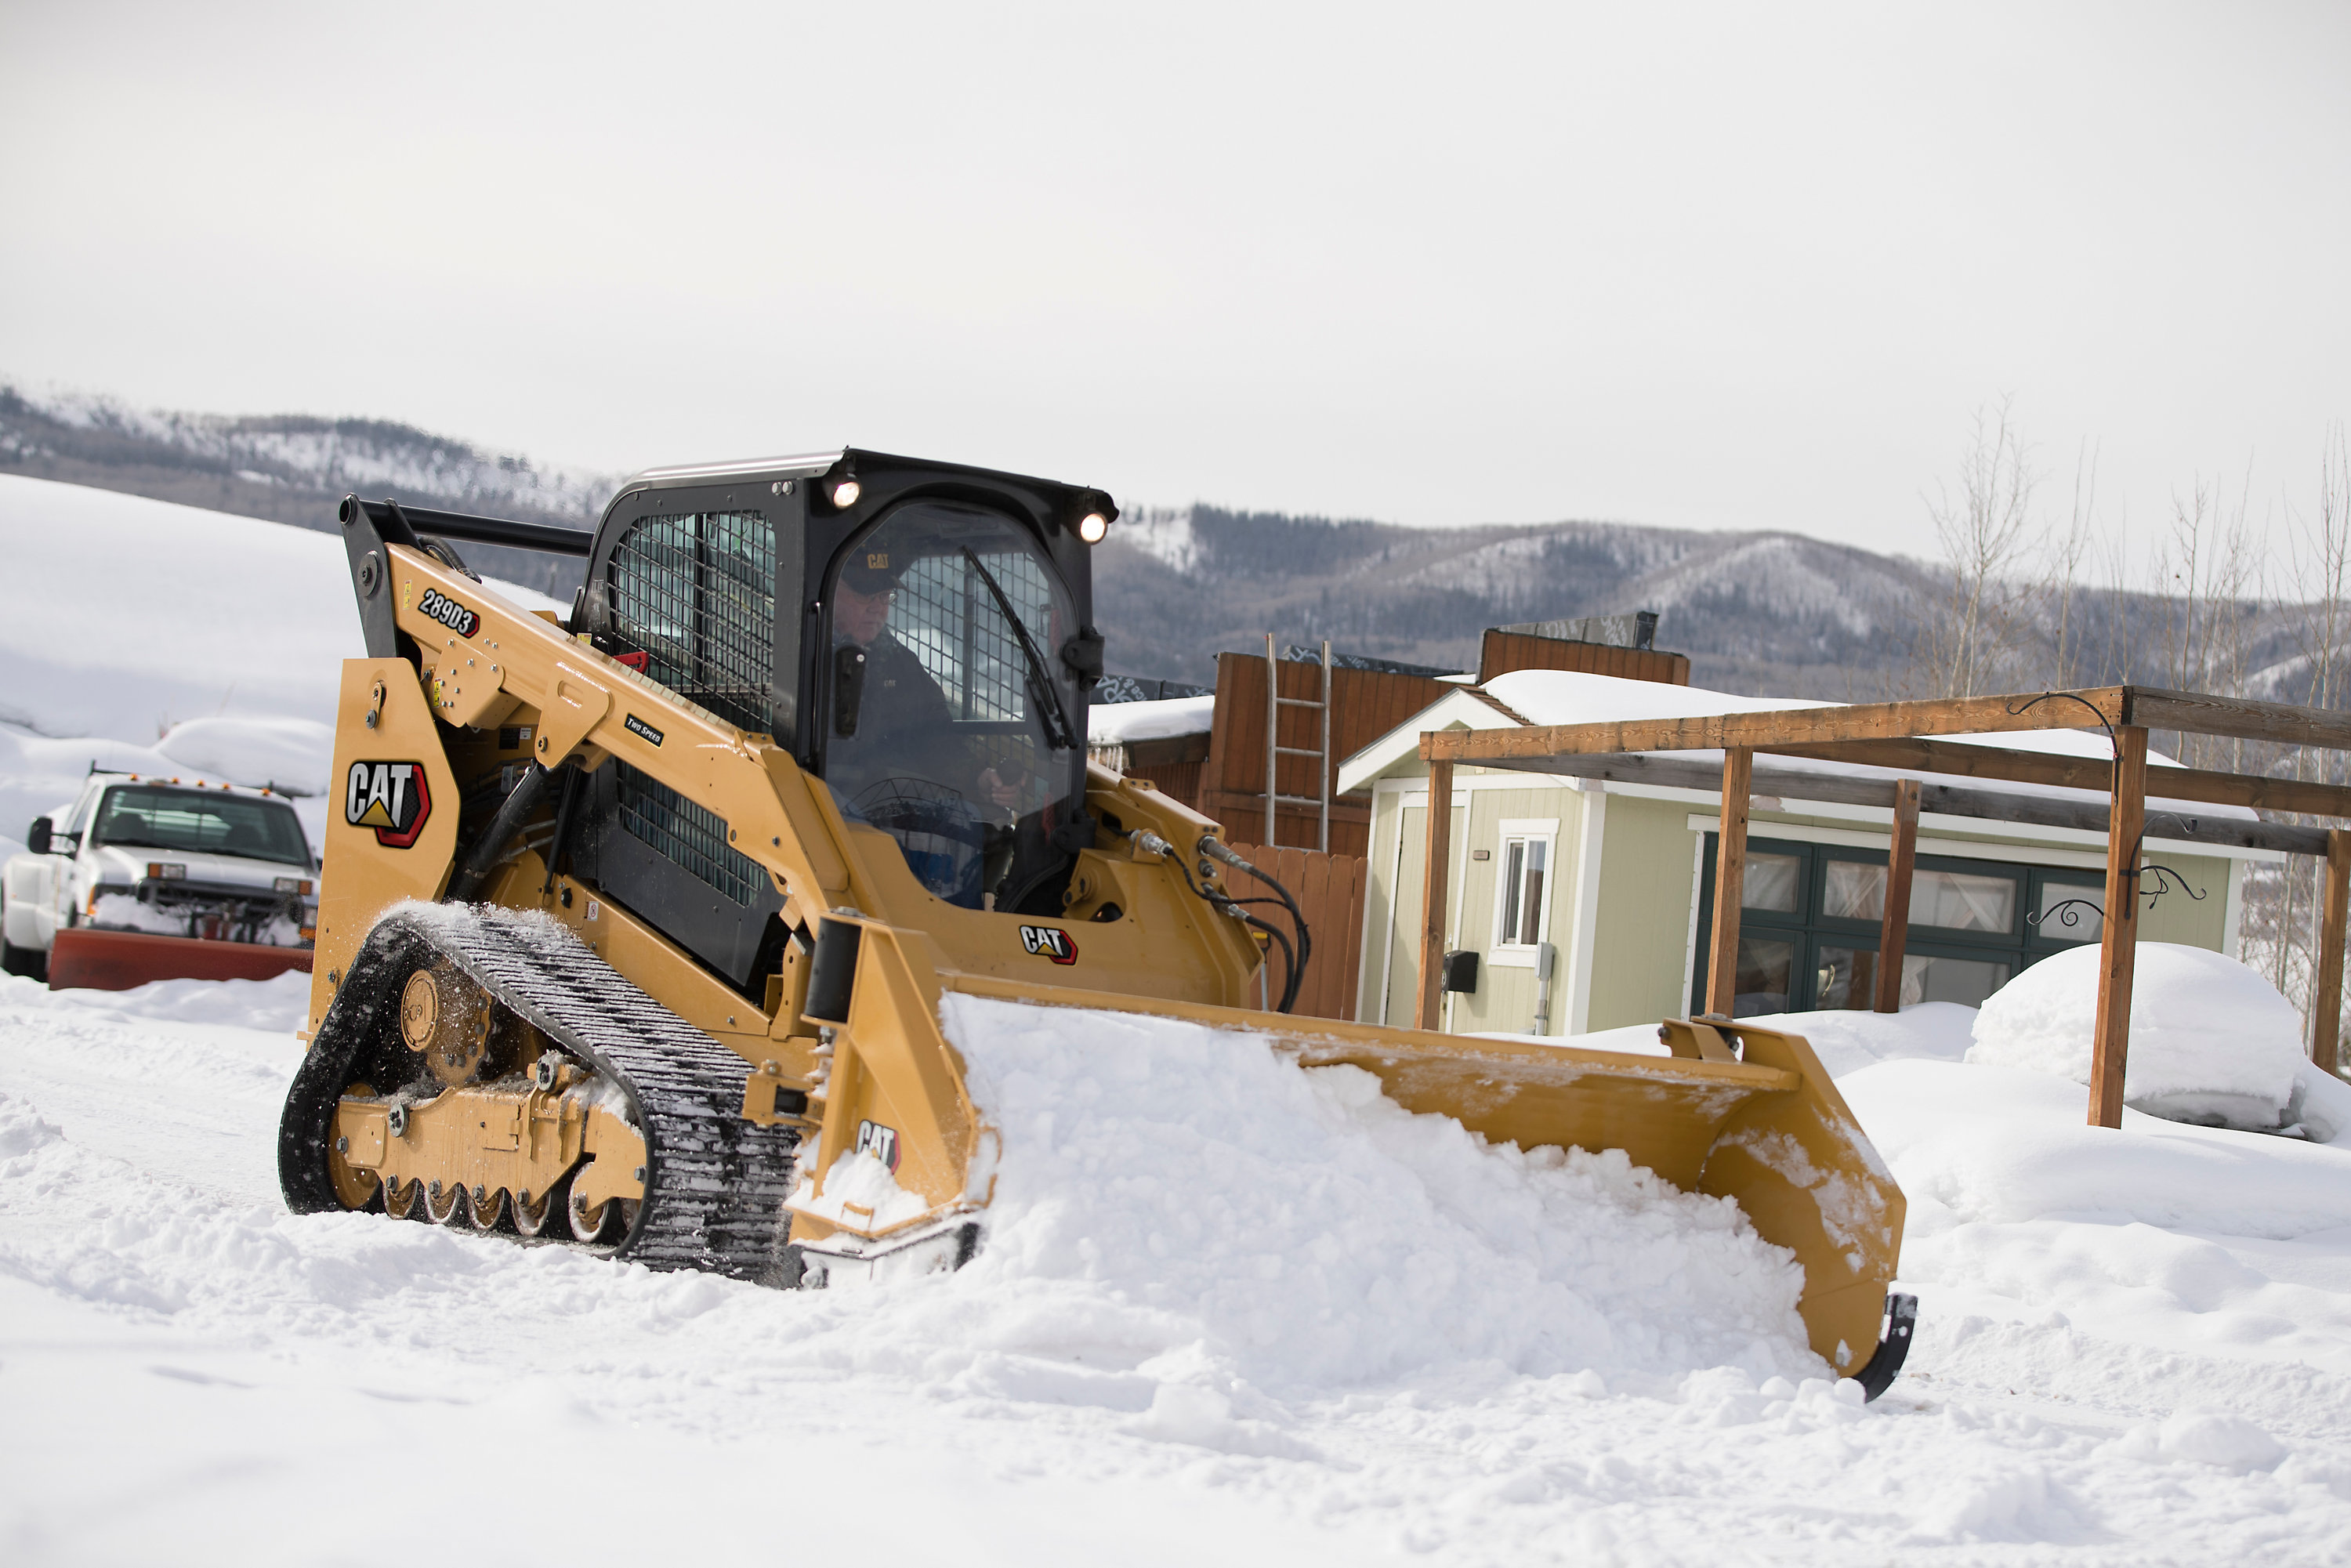 Cat Machines and Equipment for landscaping